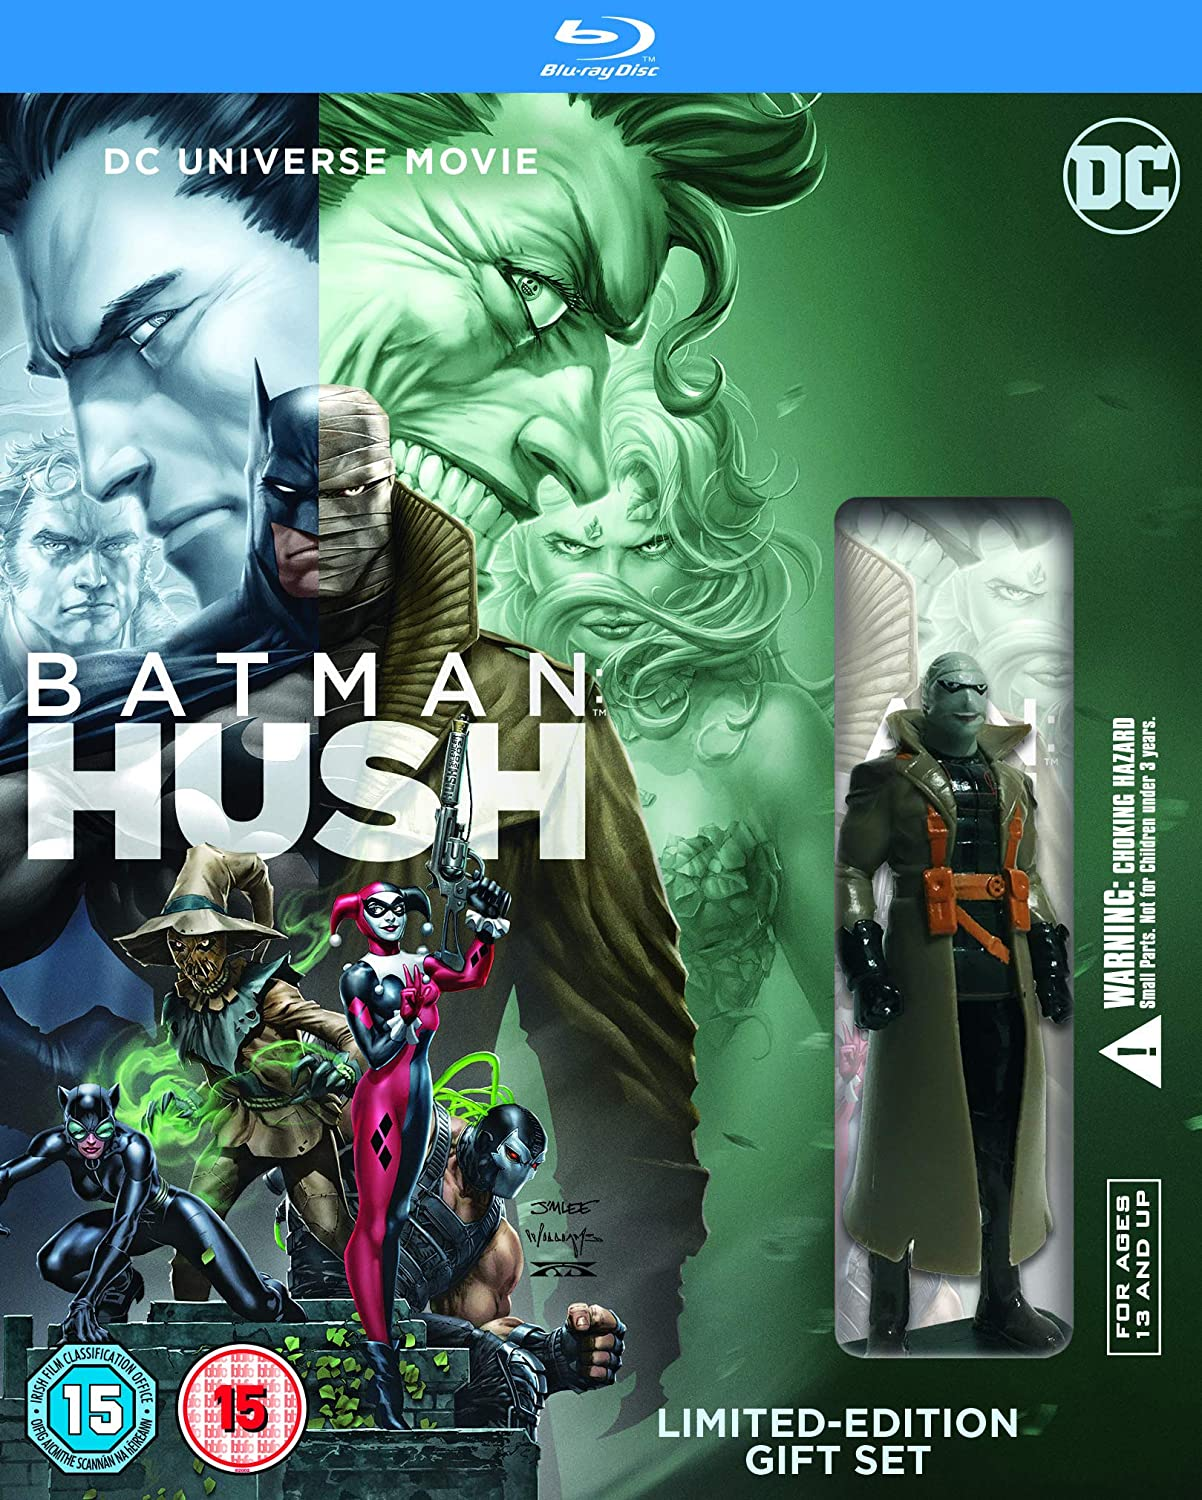 Amazon.com: Batman Hush Minifig [Blu-ray] [2019]: Cine y TV